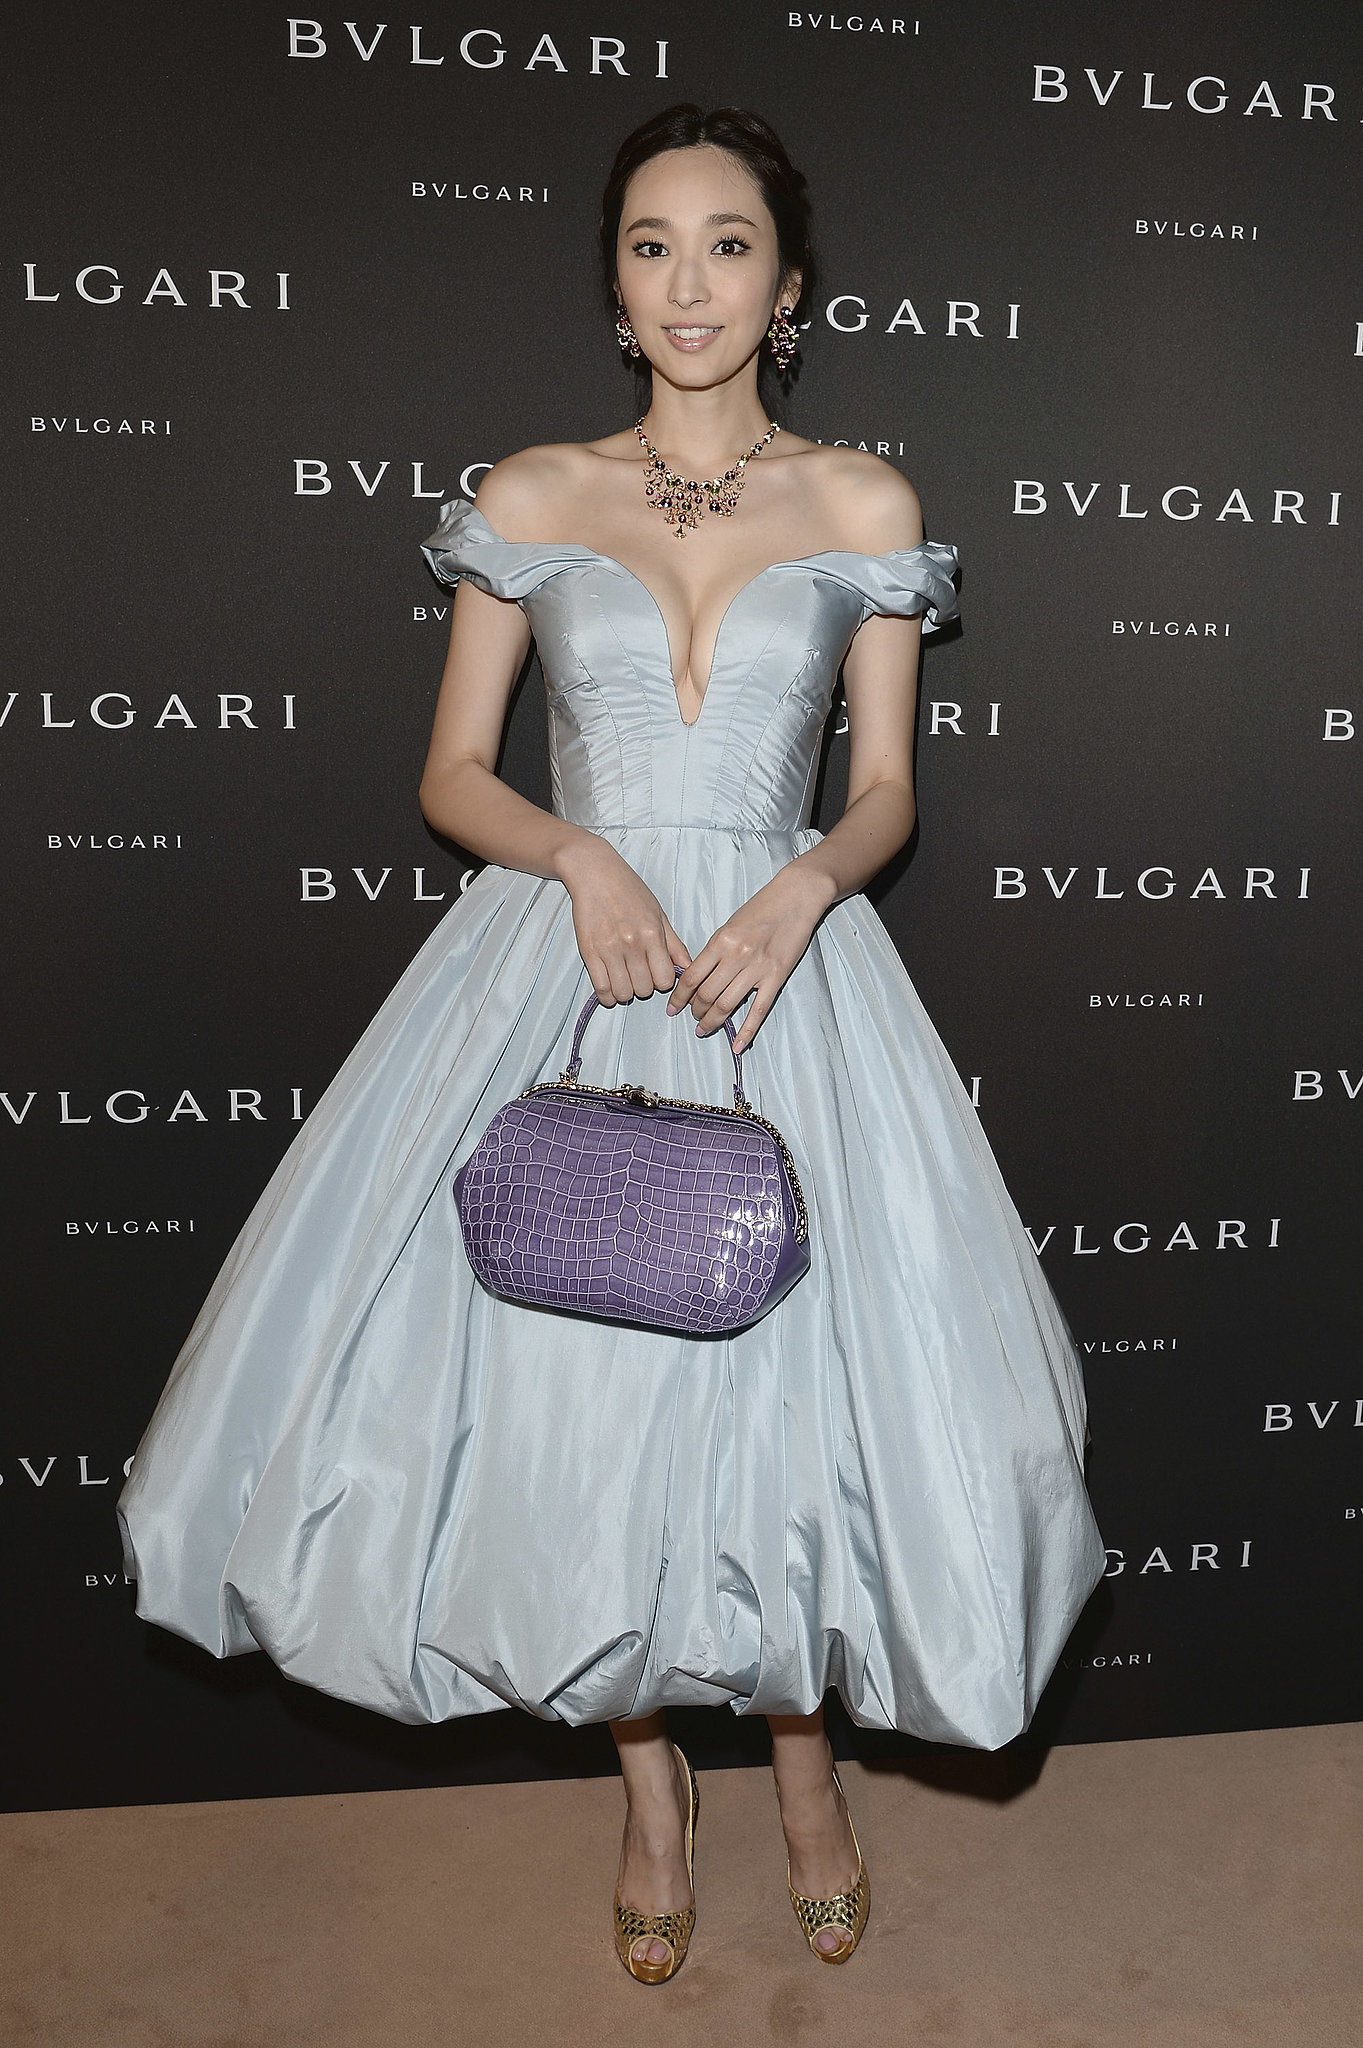 At the launch of Bulgari's Diva collection, Pace Wu looked like something out of a storybook.